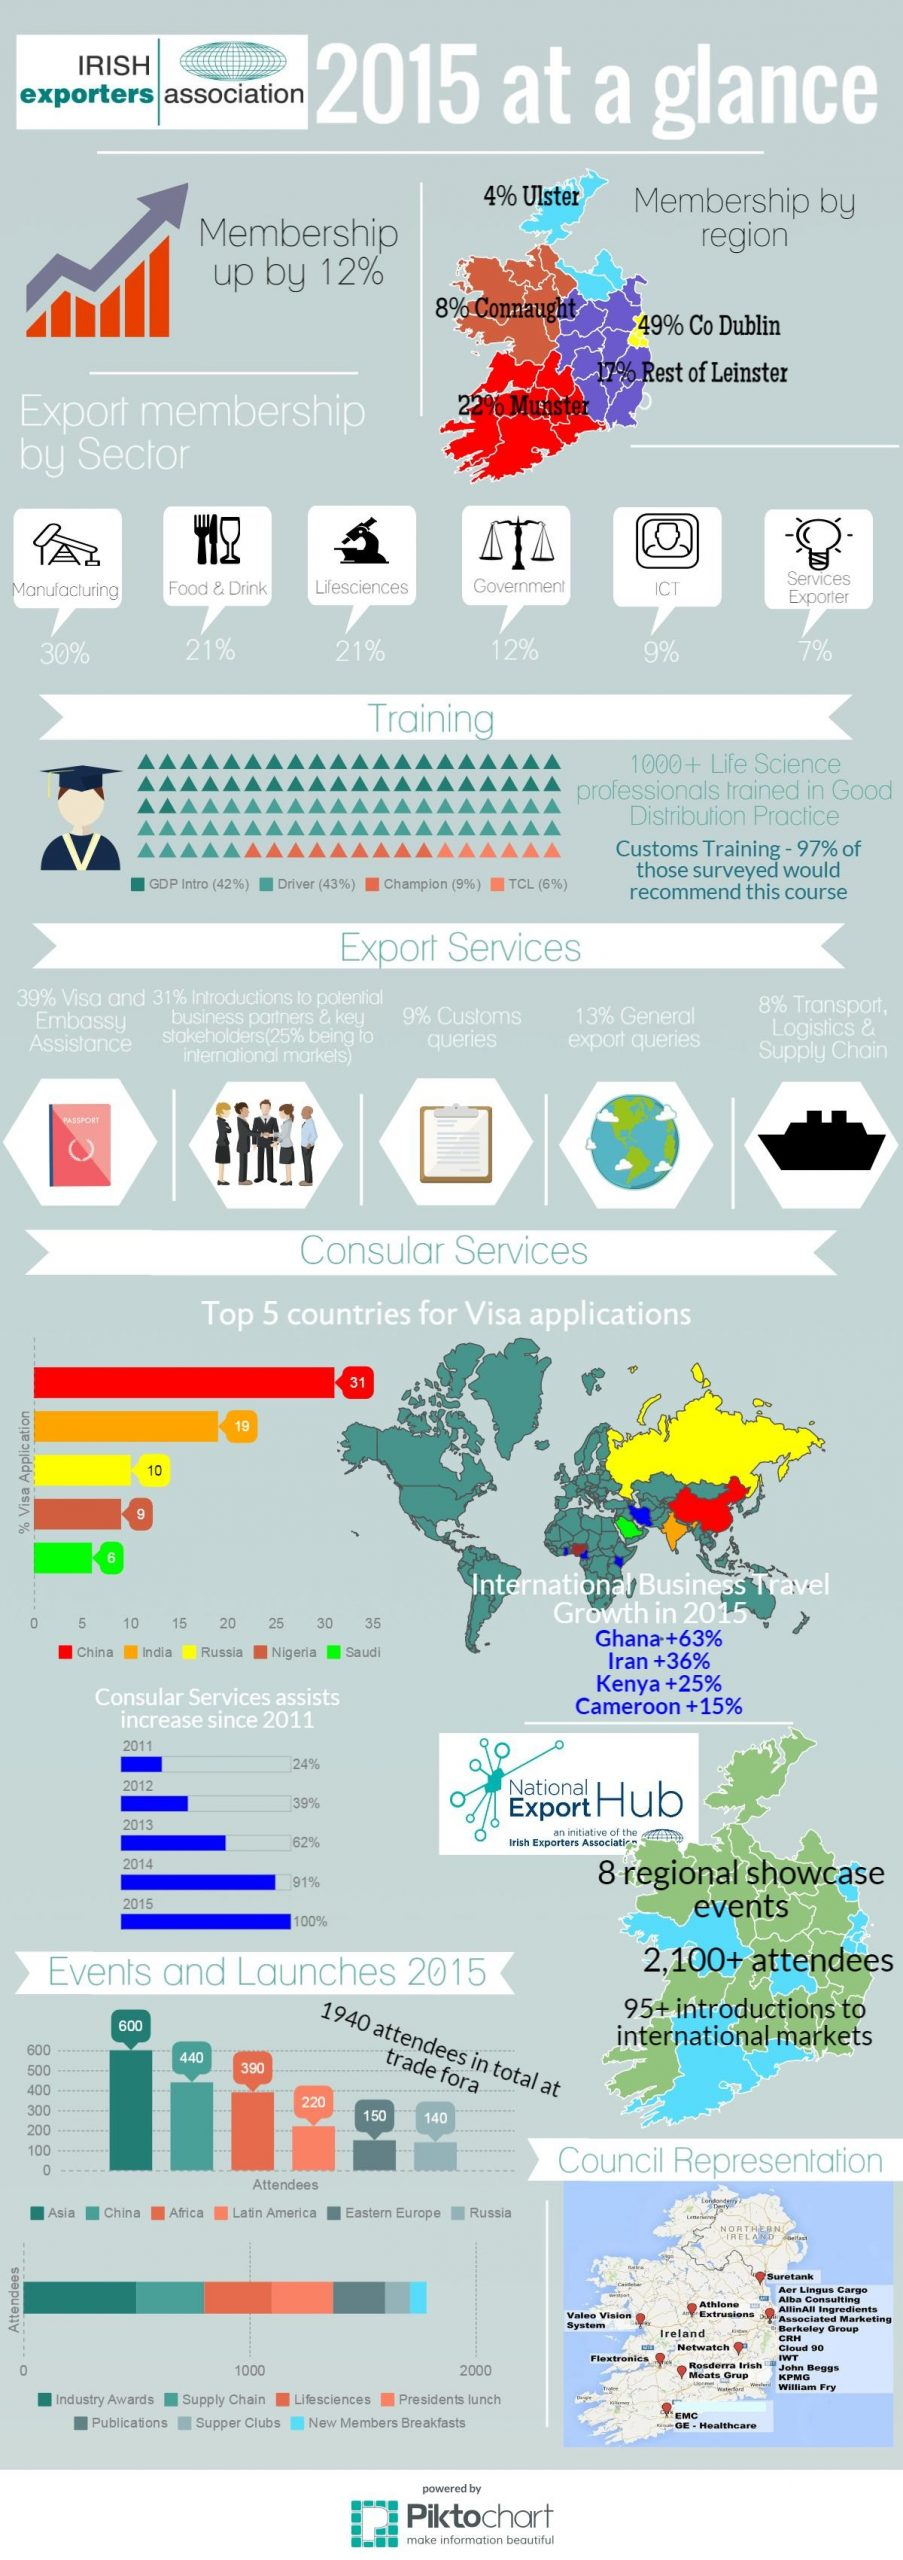 IEA Year at Glance 2015 Infographic